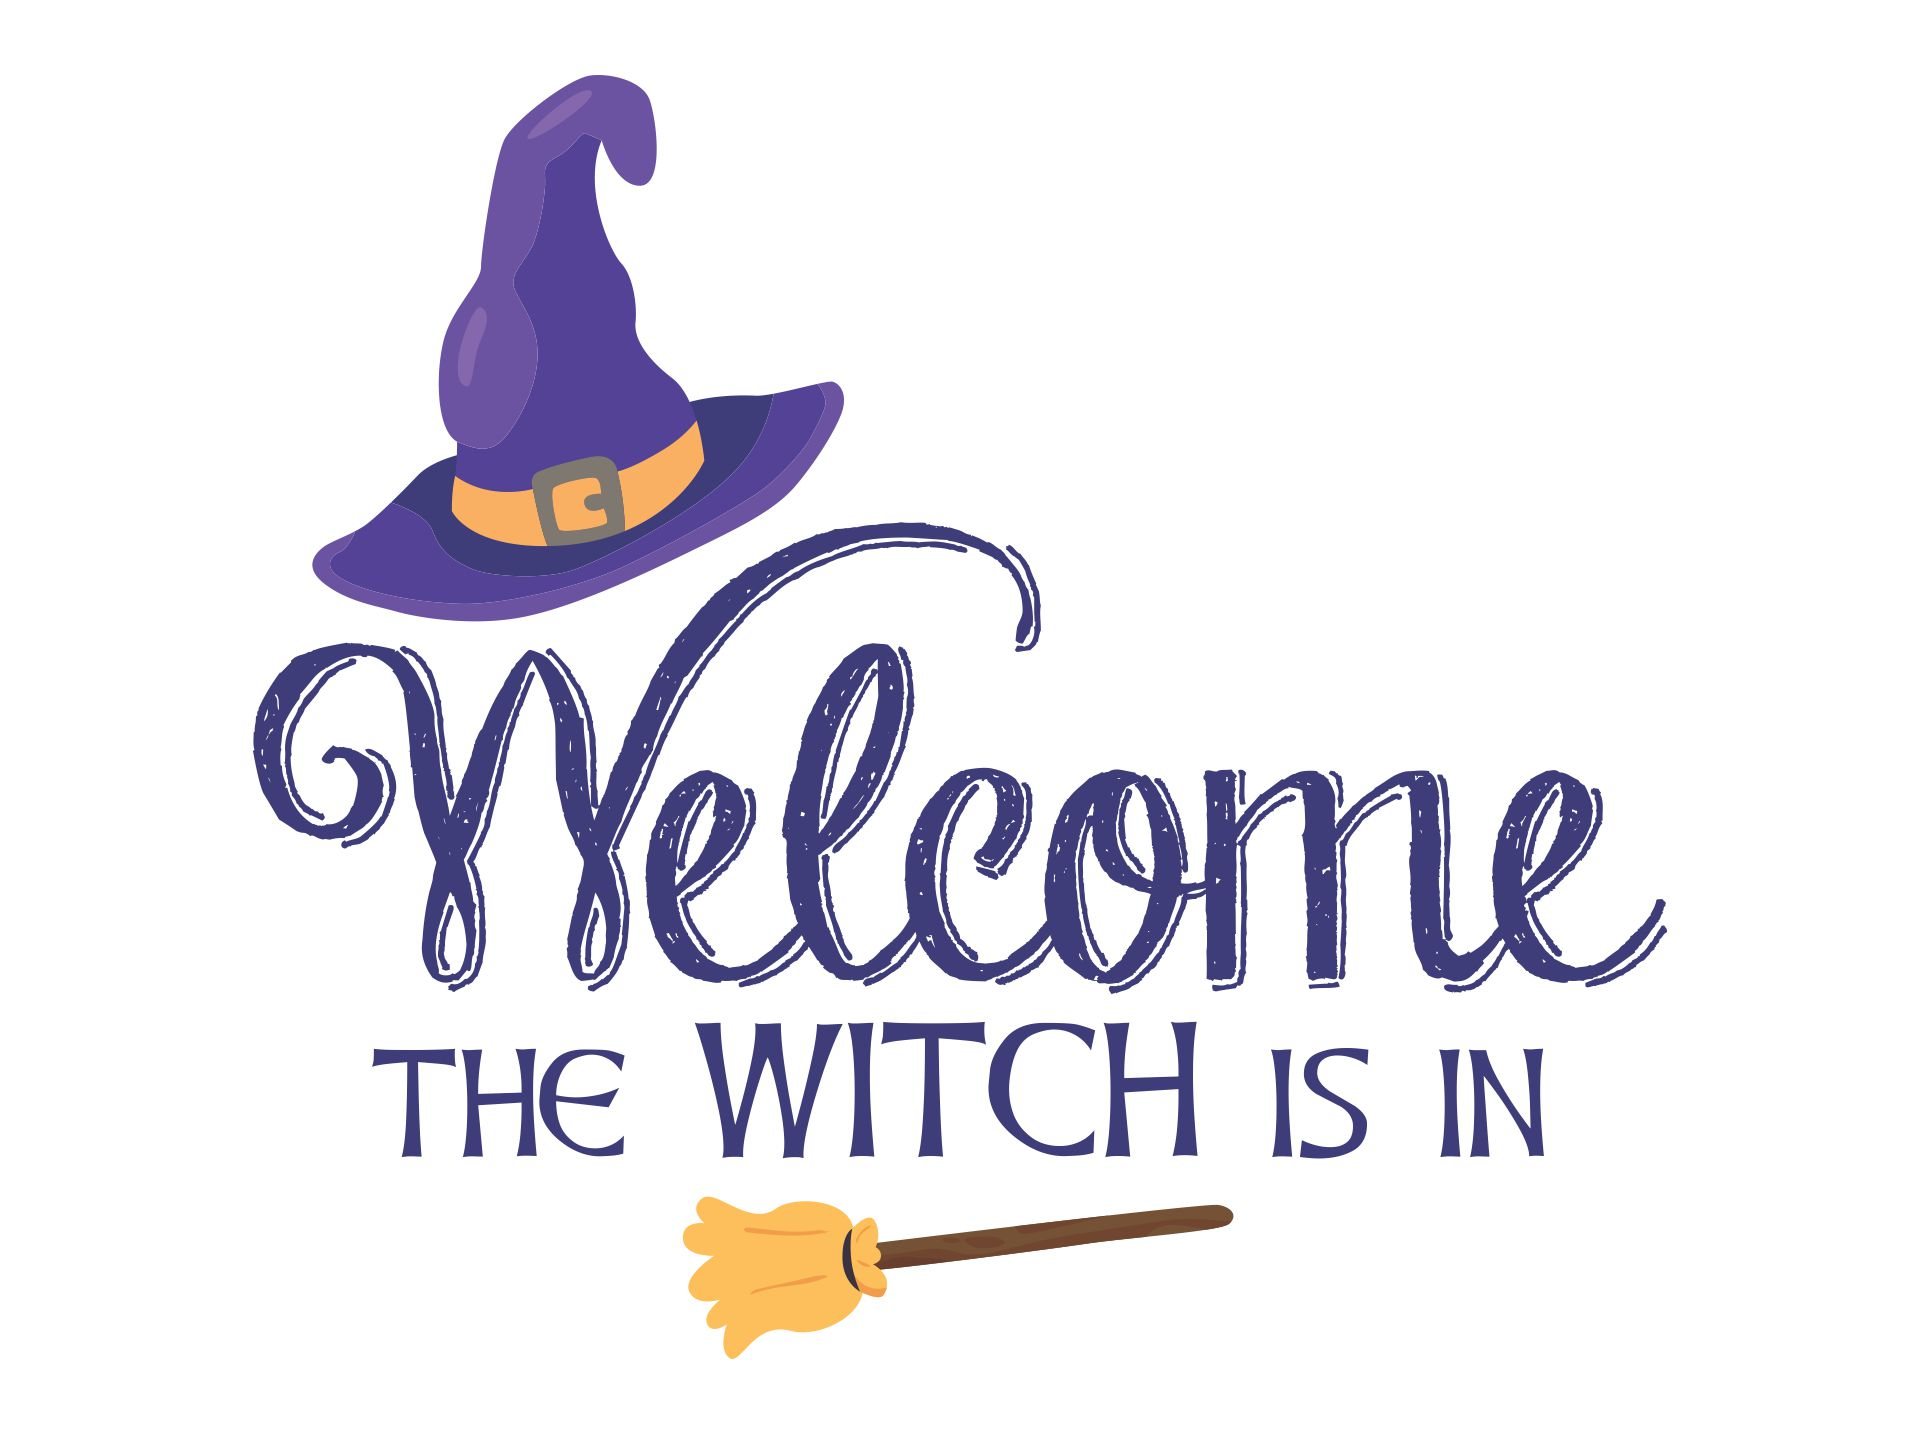 Printable Halloween Signs Witch